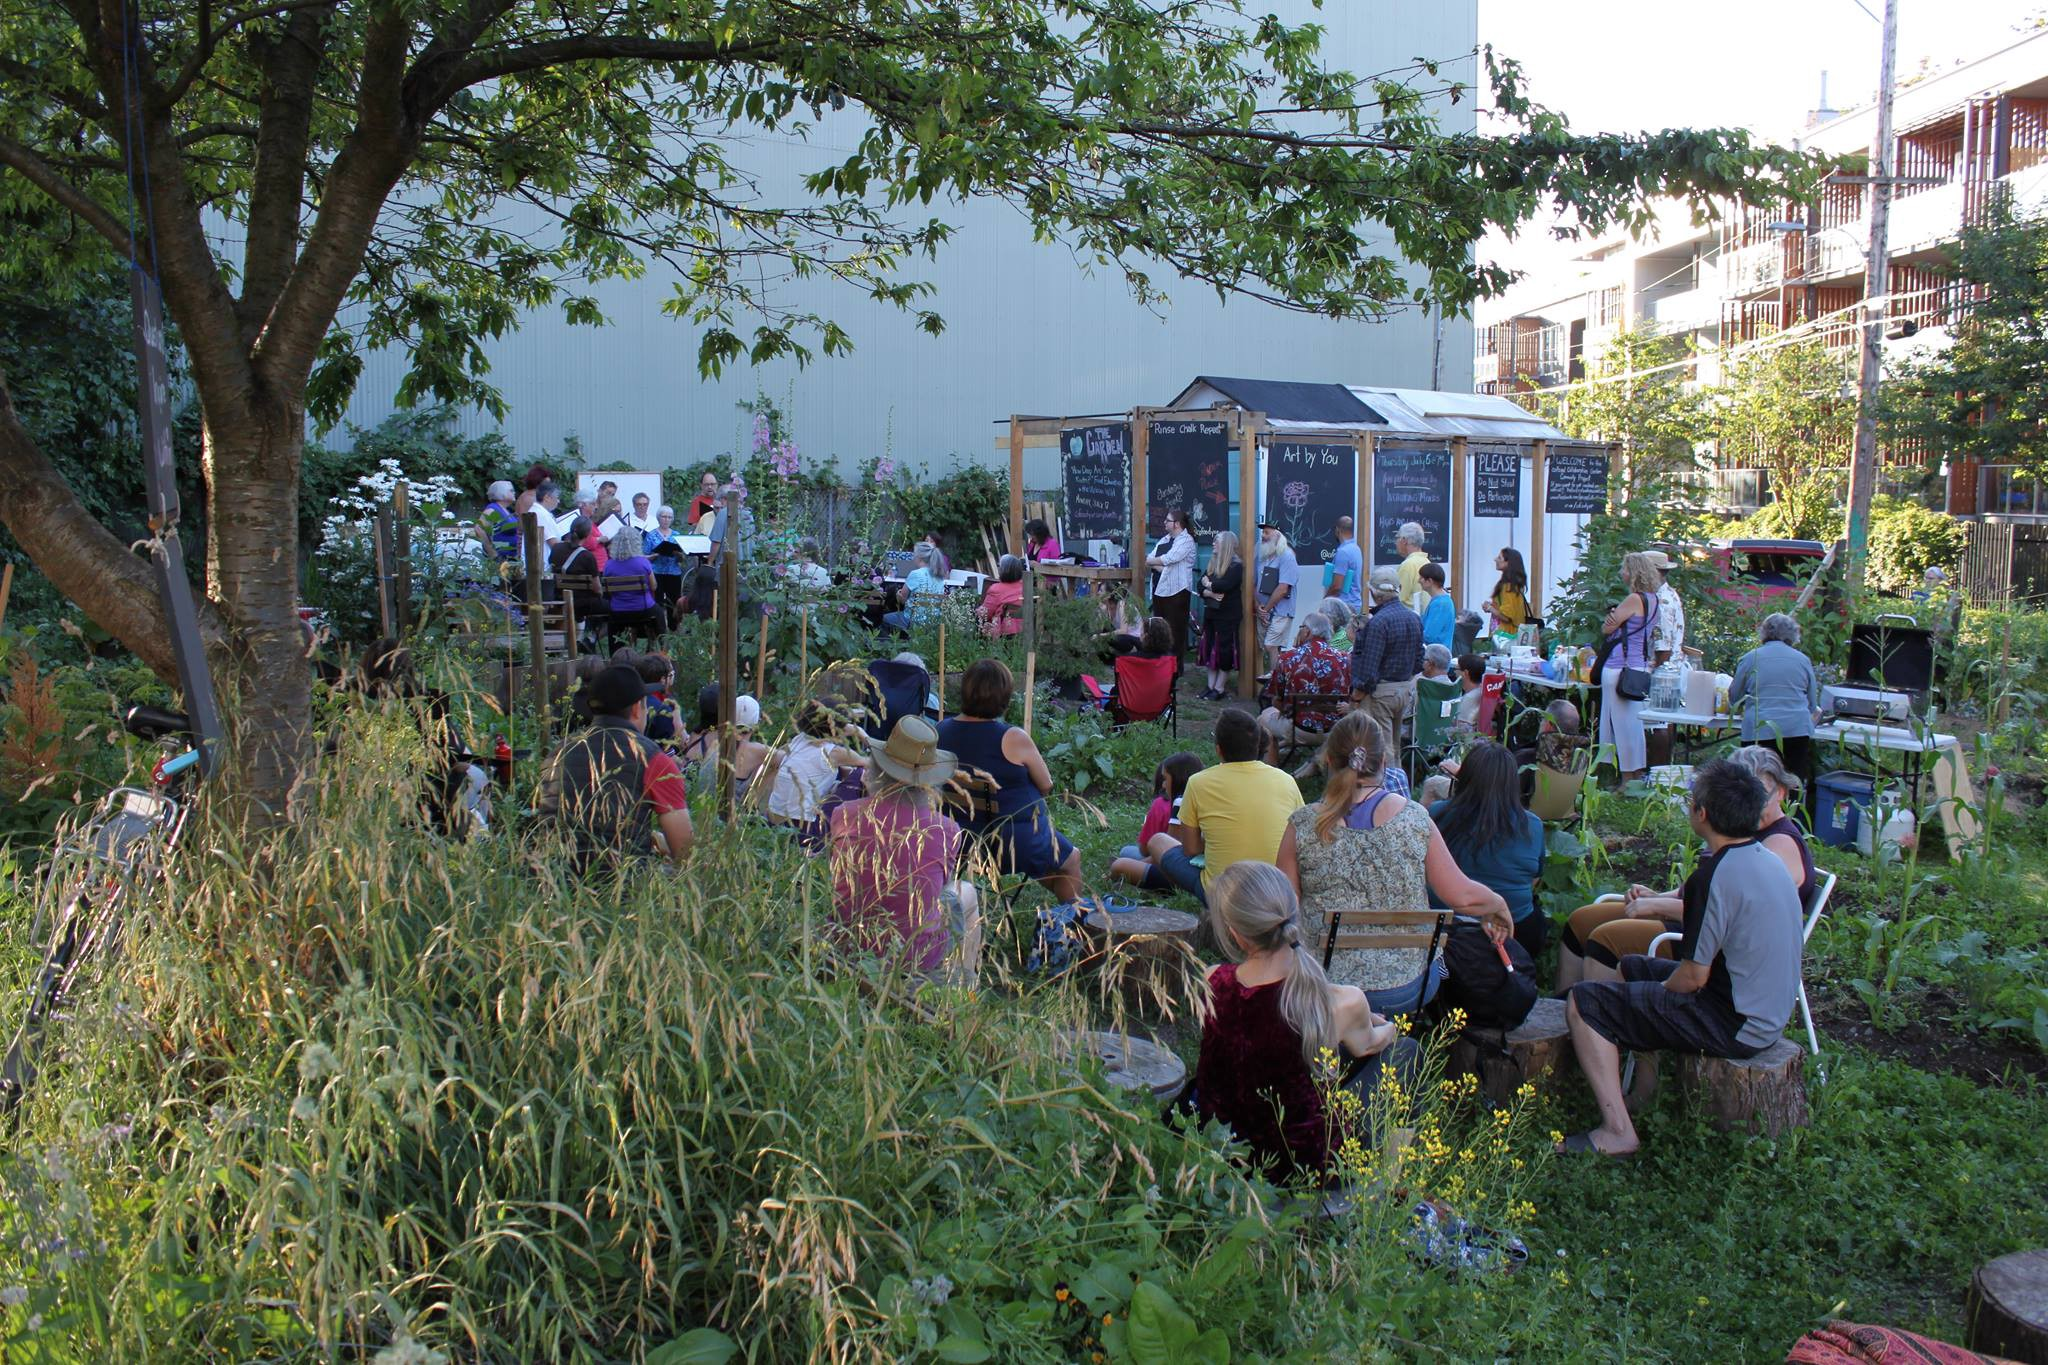 Choirs performing in the collaborative garden